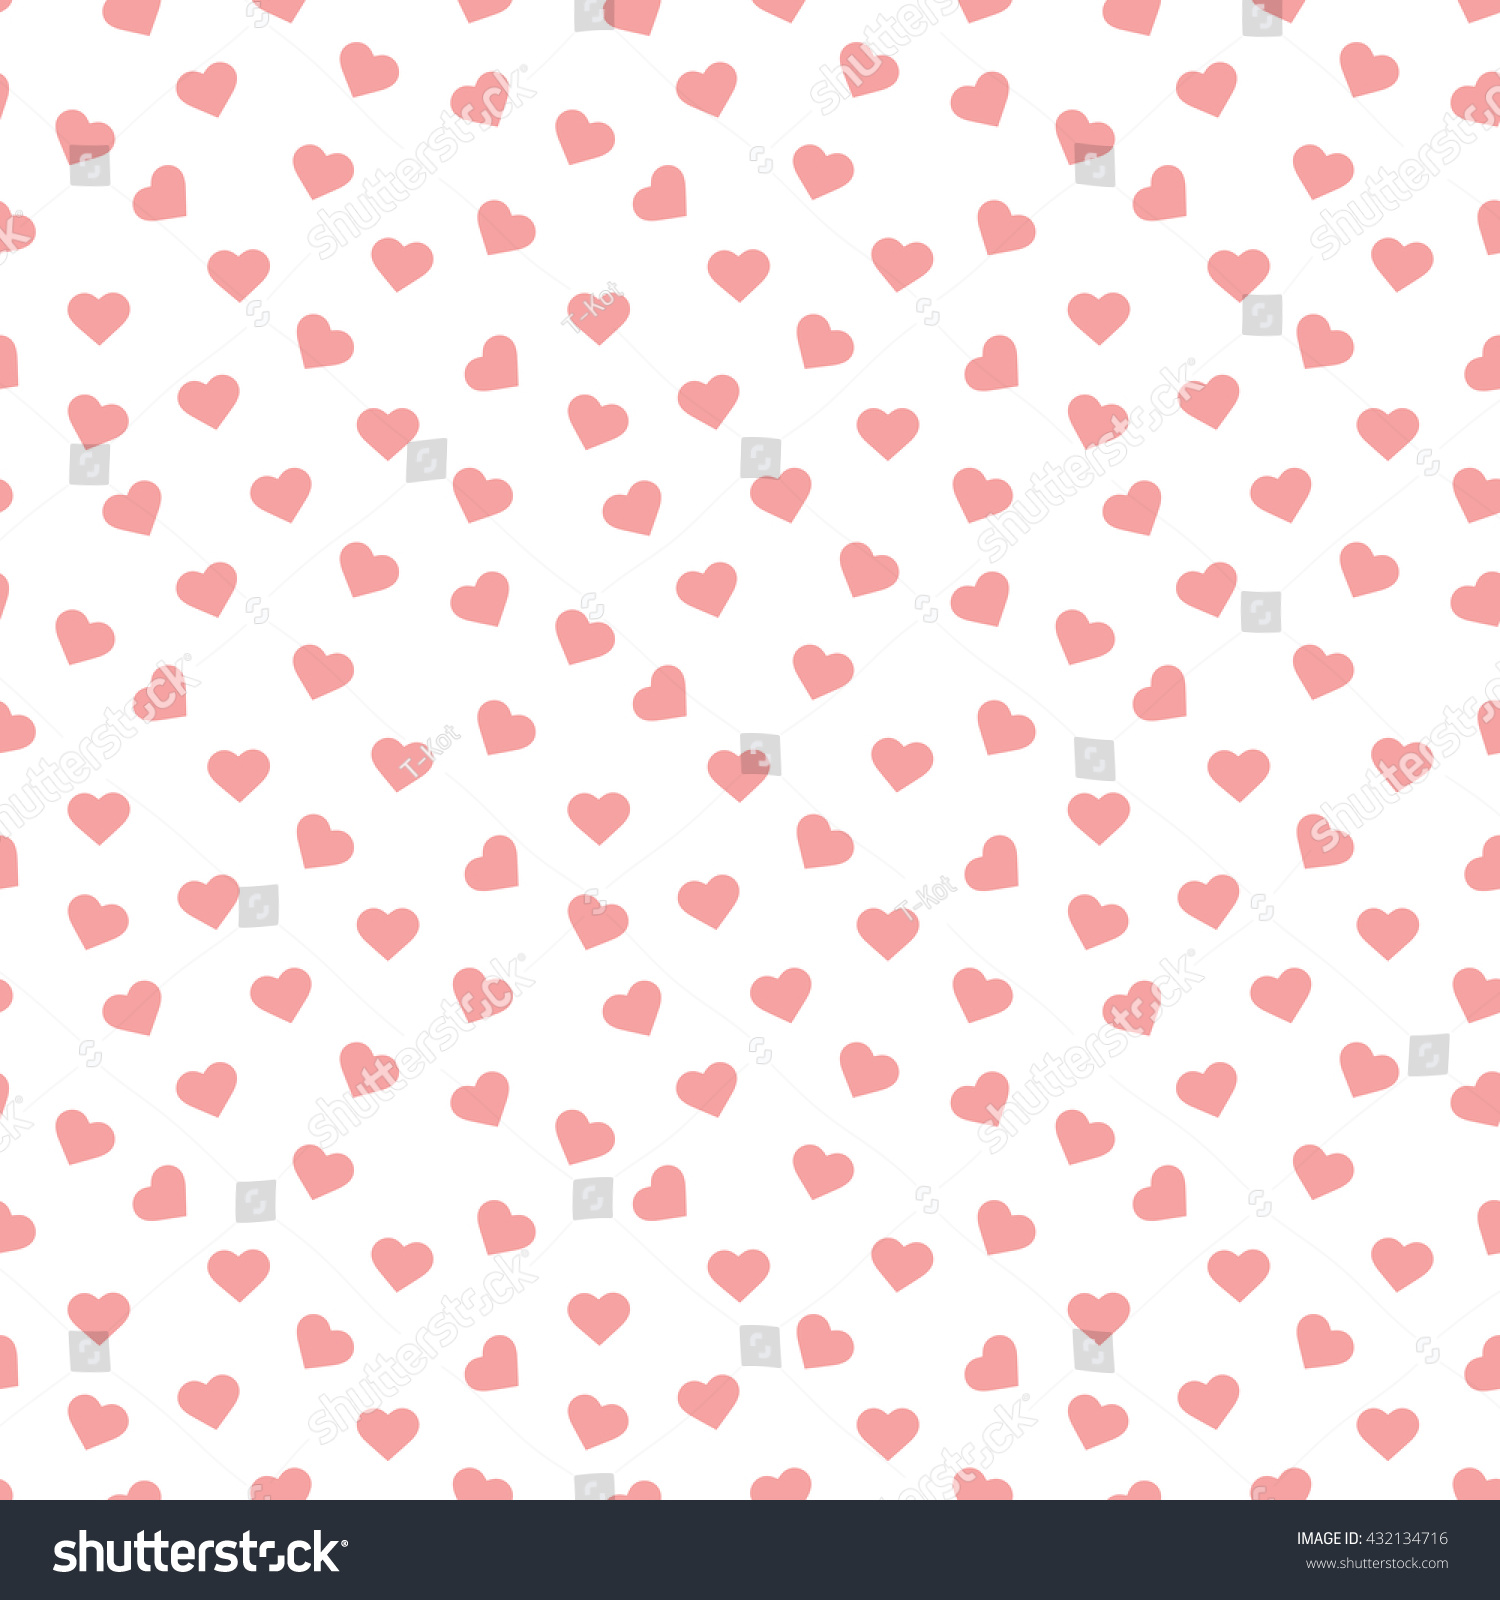 Seamless Heart Pattern Background Stock Photo (Photo, Vector ...